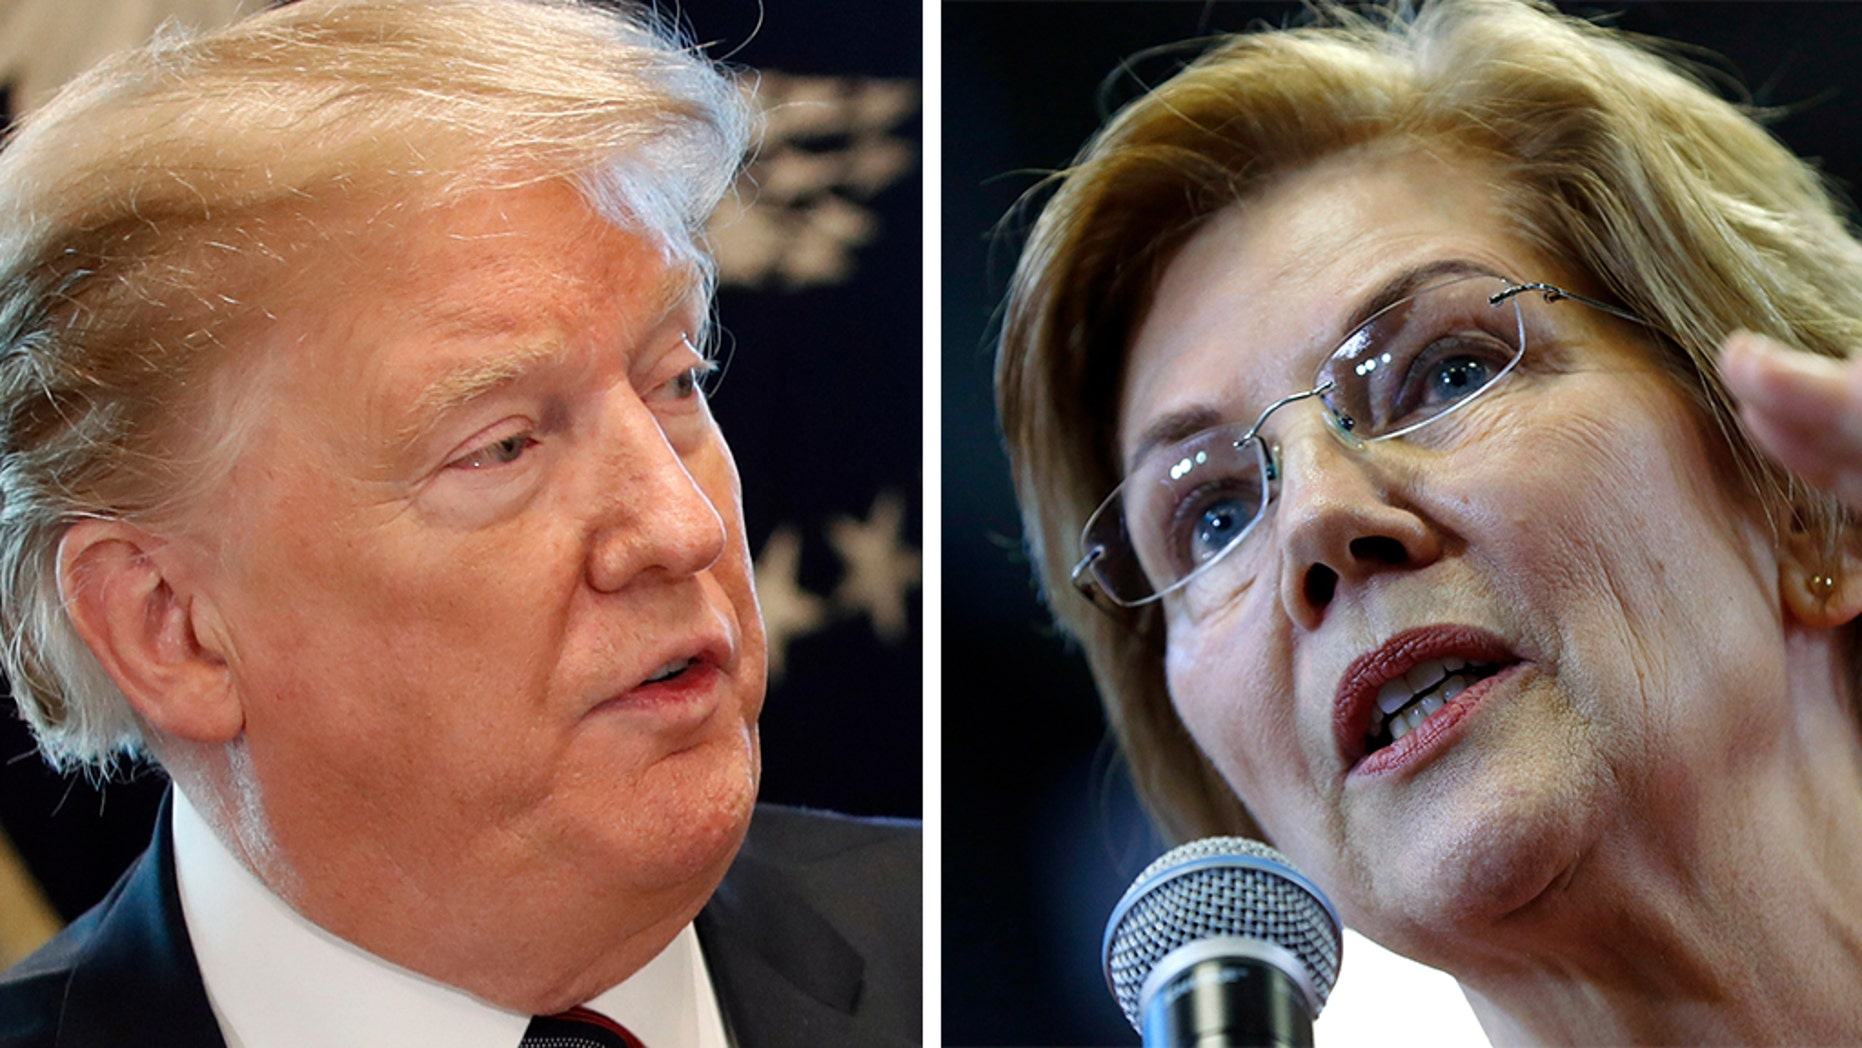 Trump suggests 'full Indian garb' for Warren's husband in renewed attack